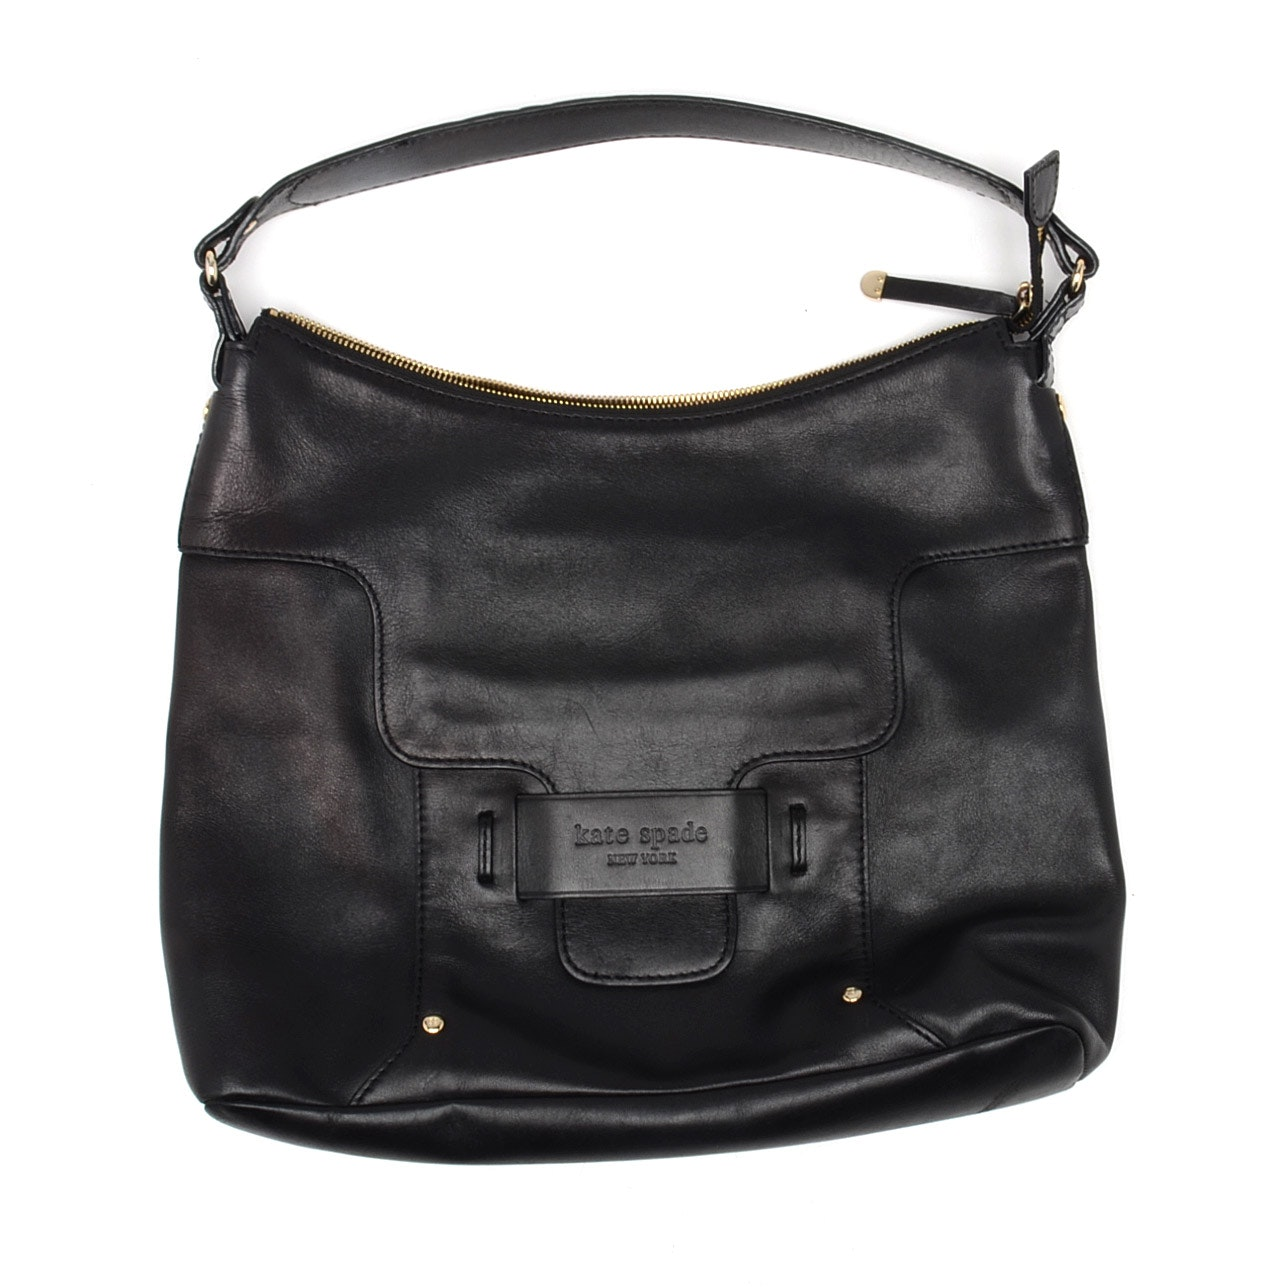 Kate Spade Savona Paige Black Leather Handbag